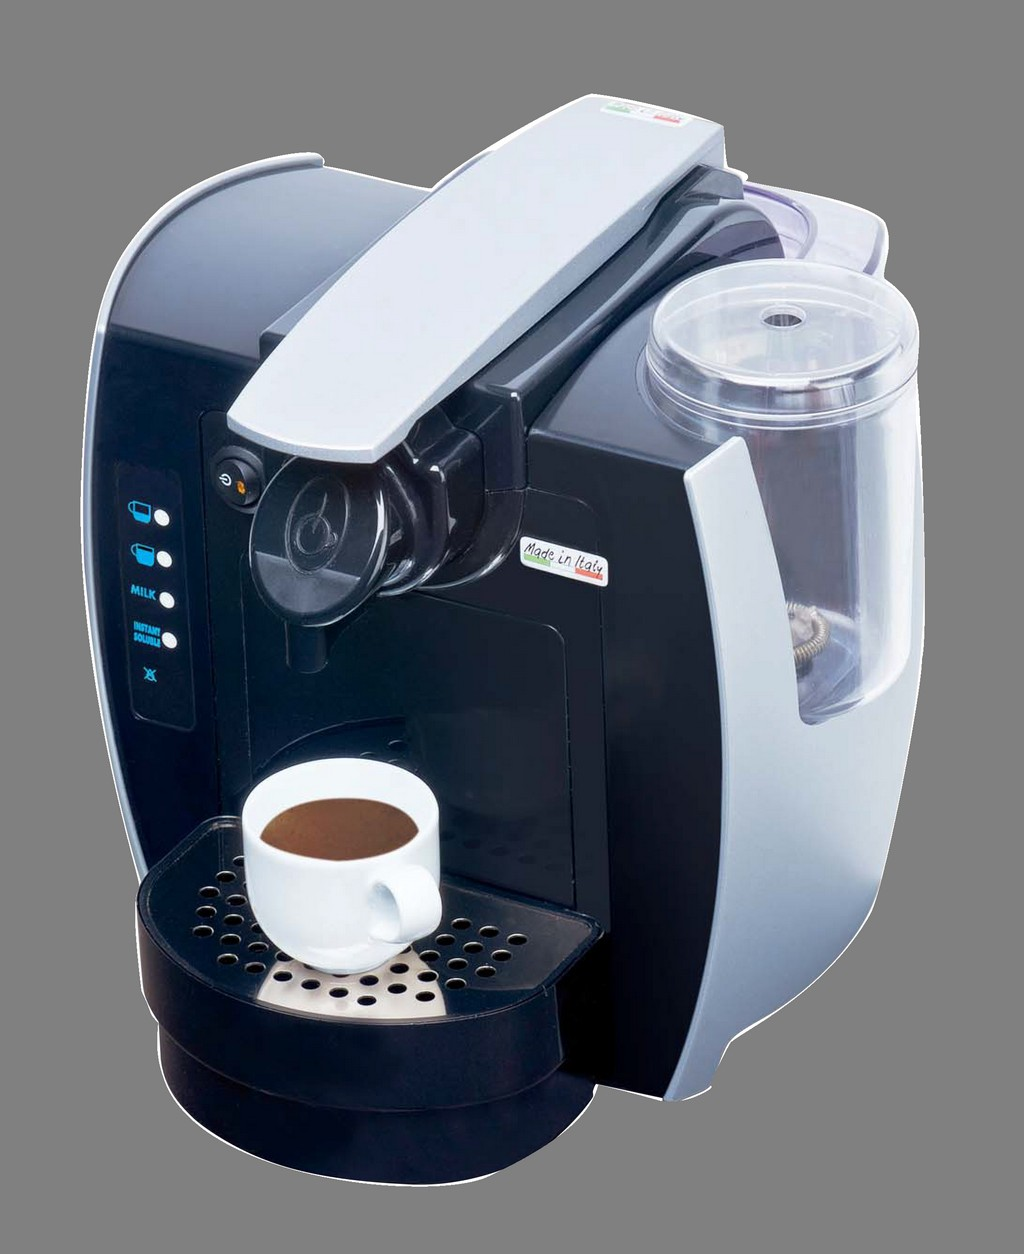 buy espresso machine, parts of an espresso machine, rancilio espresso maker